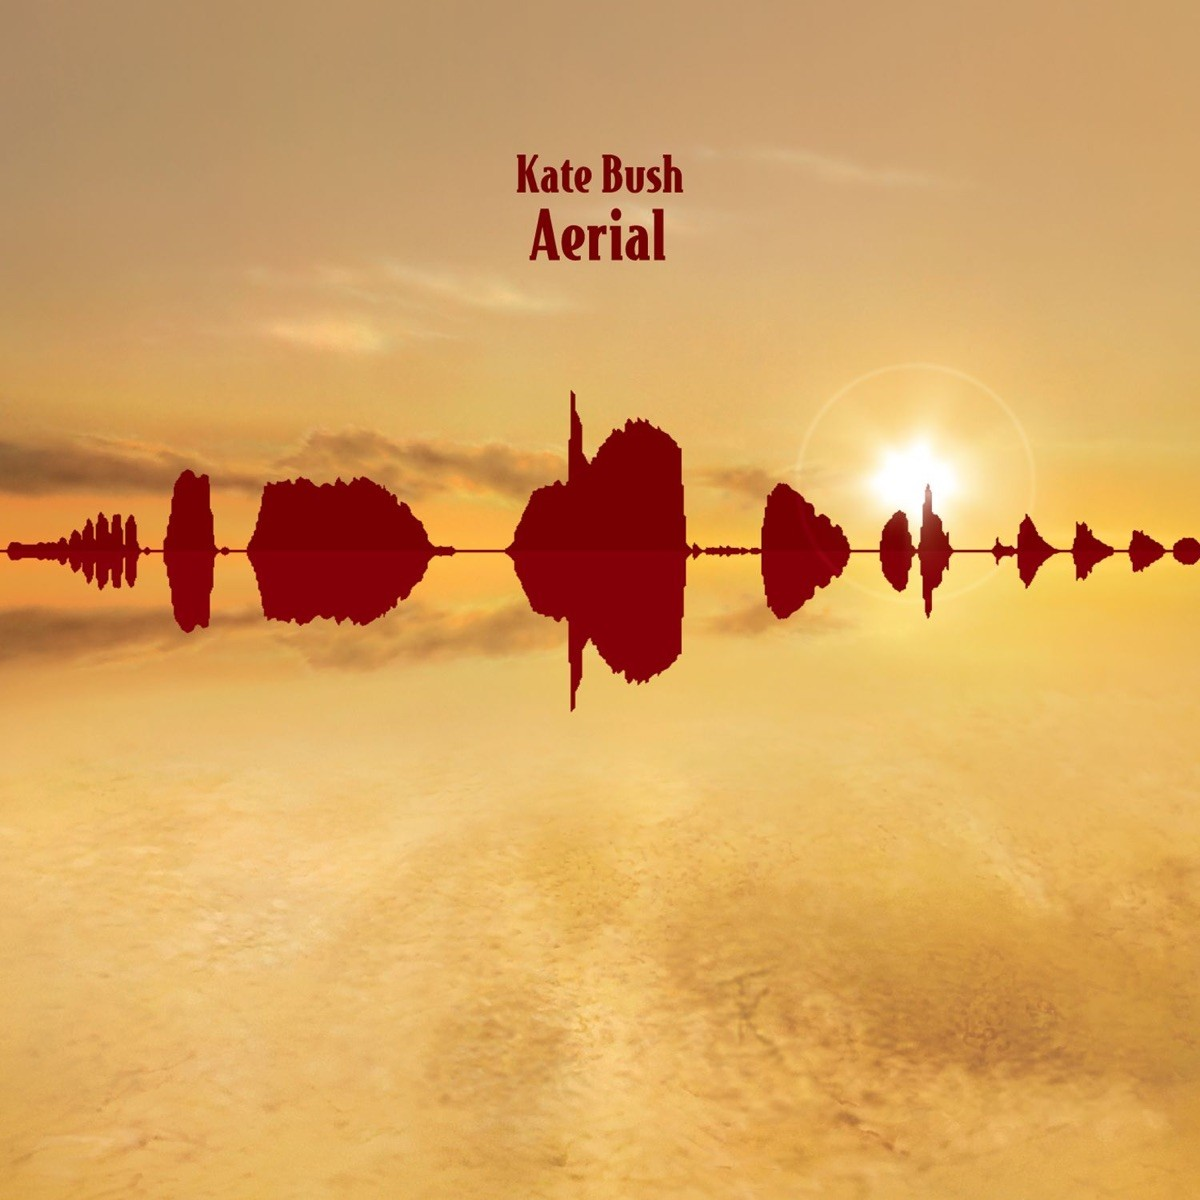 Kate Bush - Aerial CD - CDEMCJD 6253